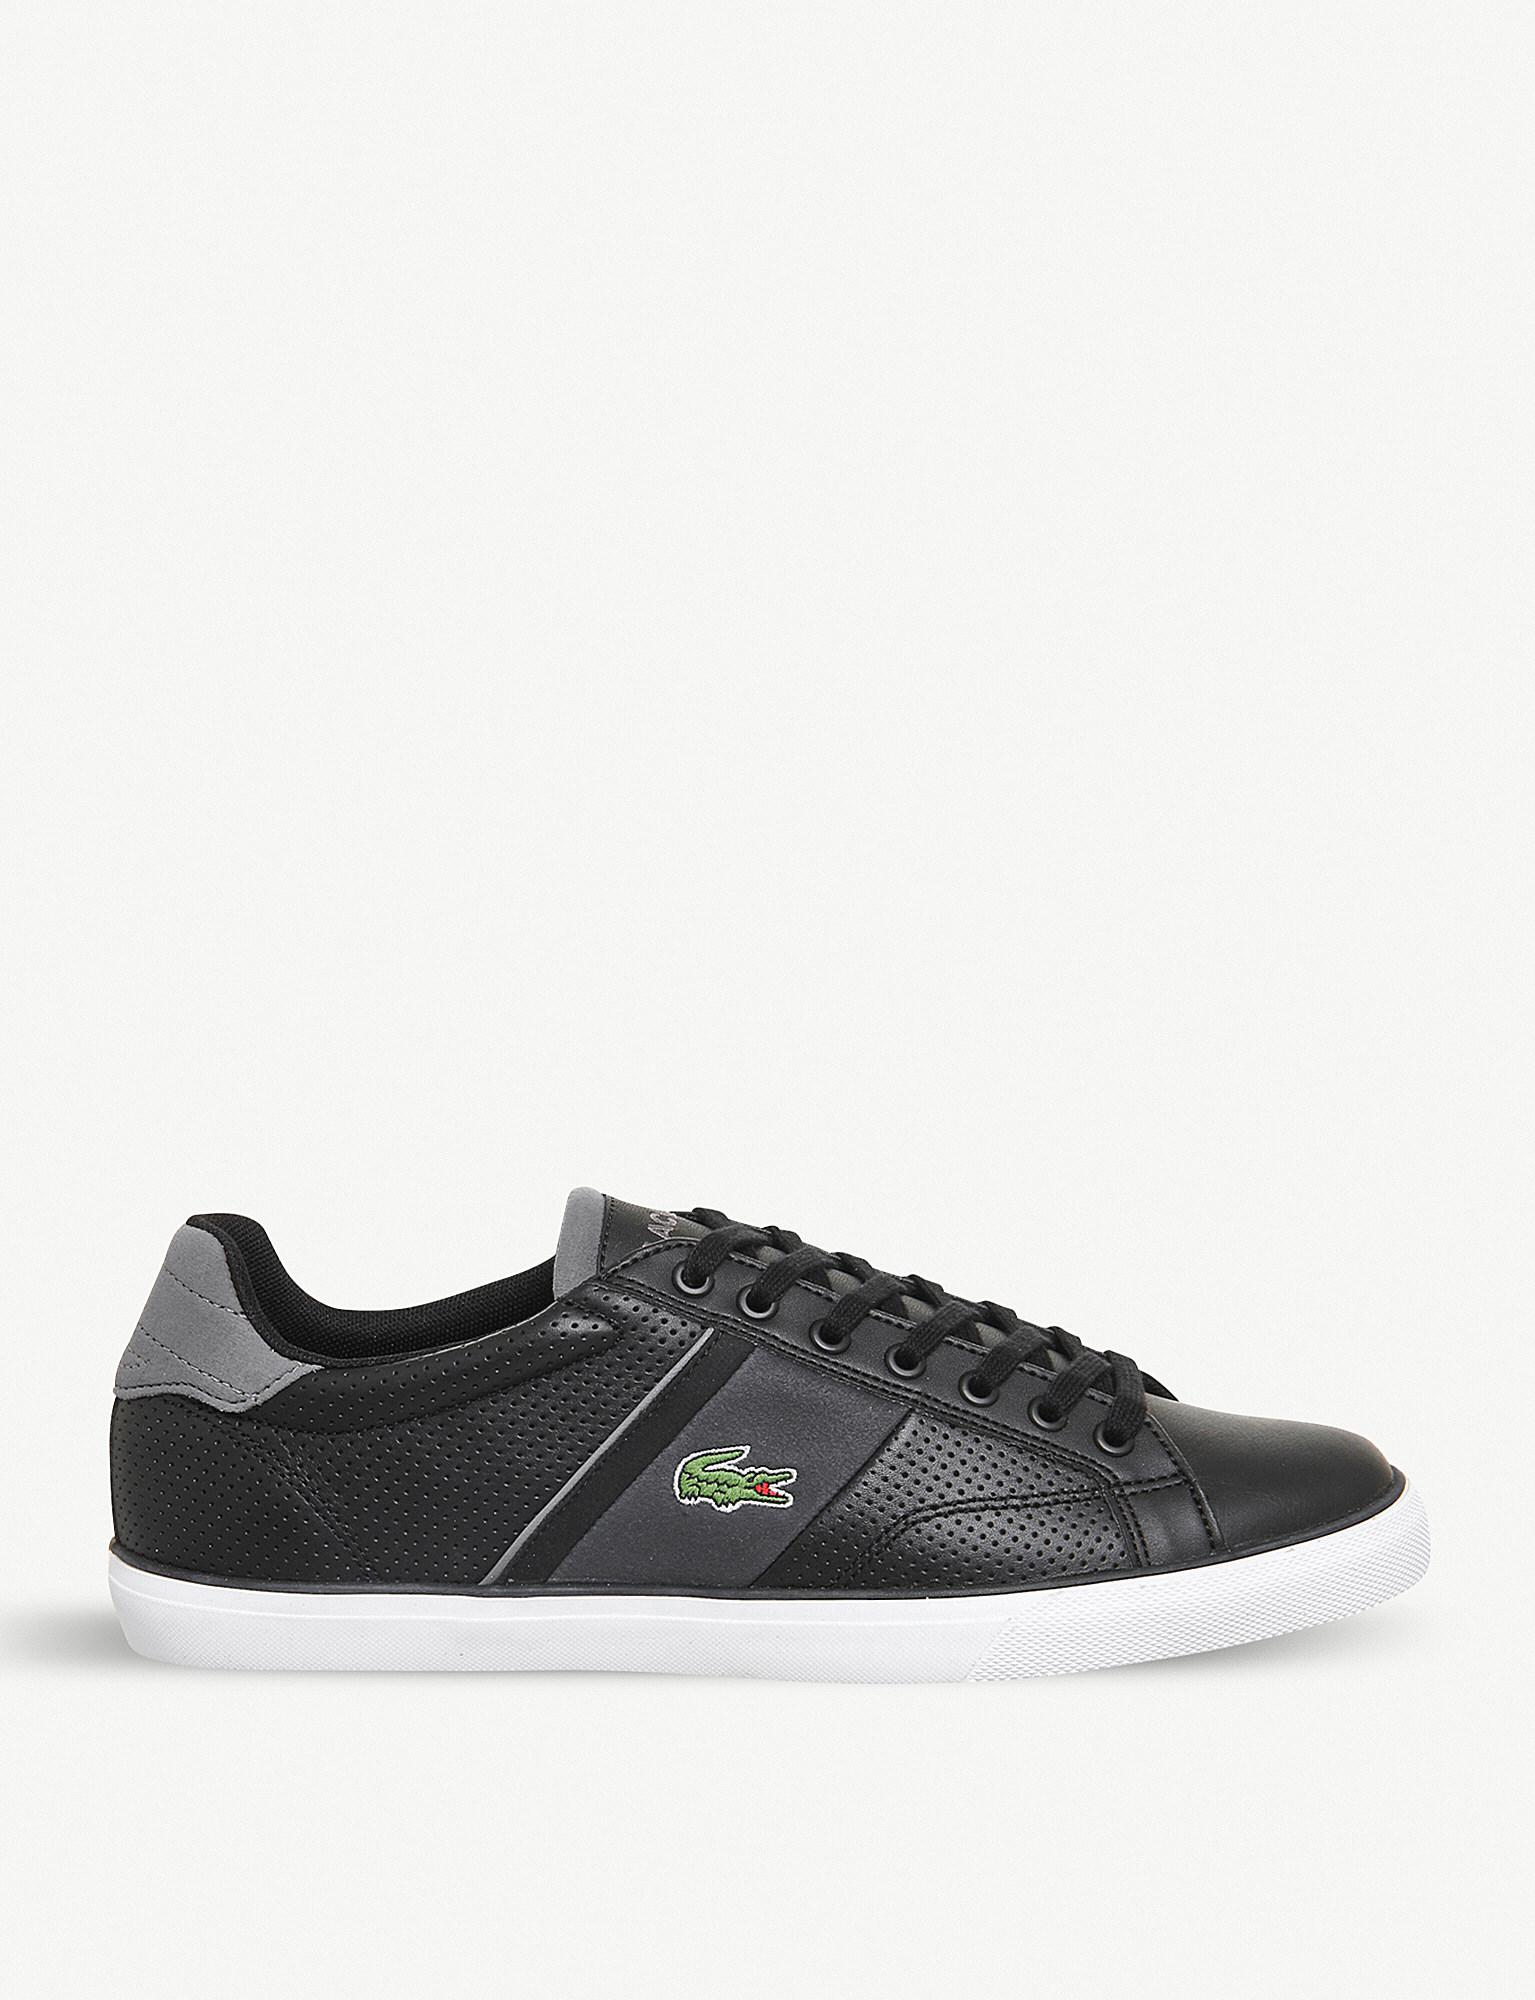 2b3b4c1665ff Lyst - Lacoste Fairlead Perforated Leather Trainers in Black for Men